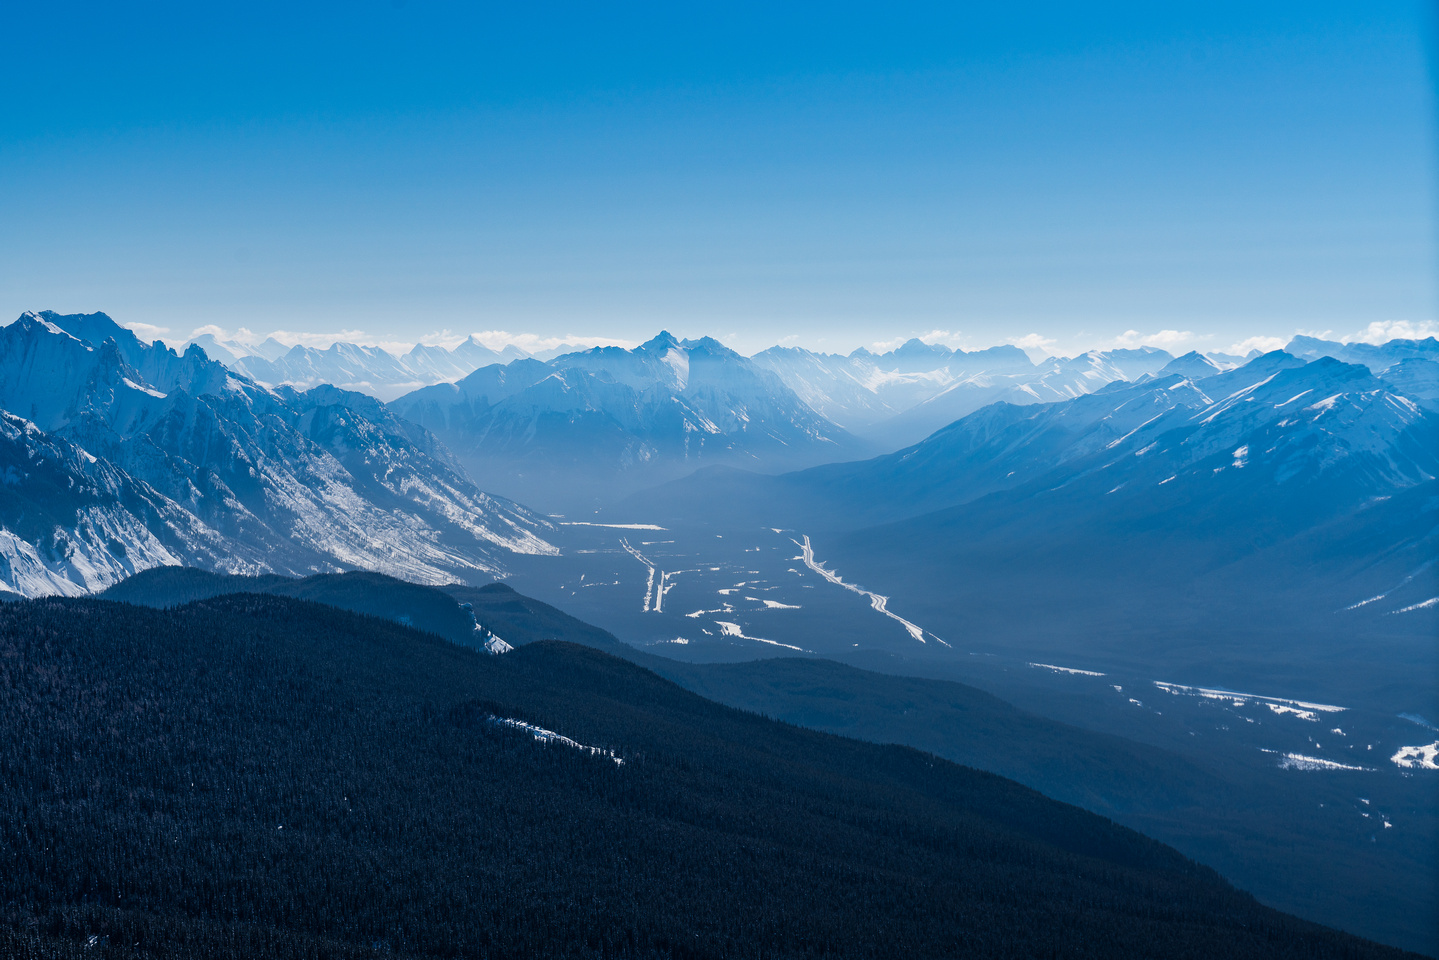 Looking through the cold winter haze towards Banff and Mount Rundle.